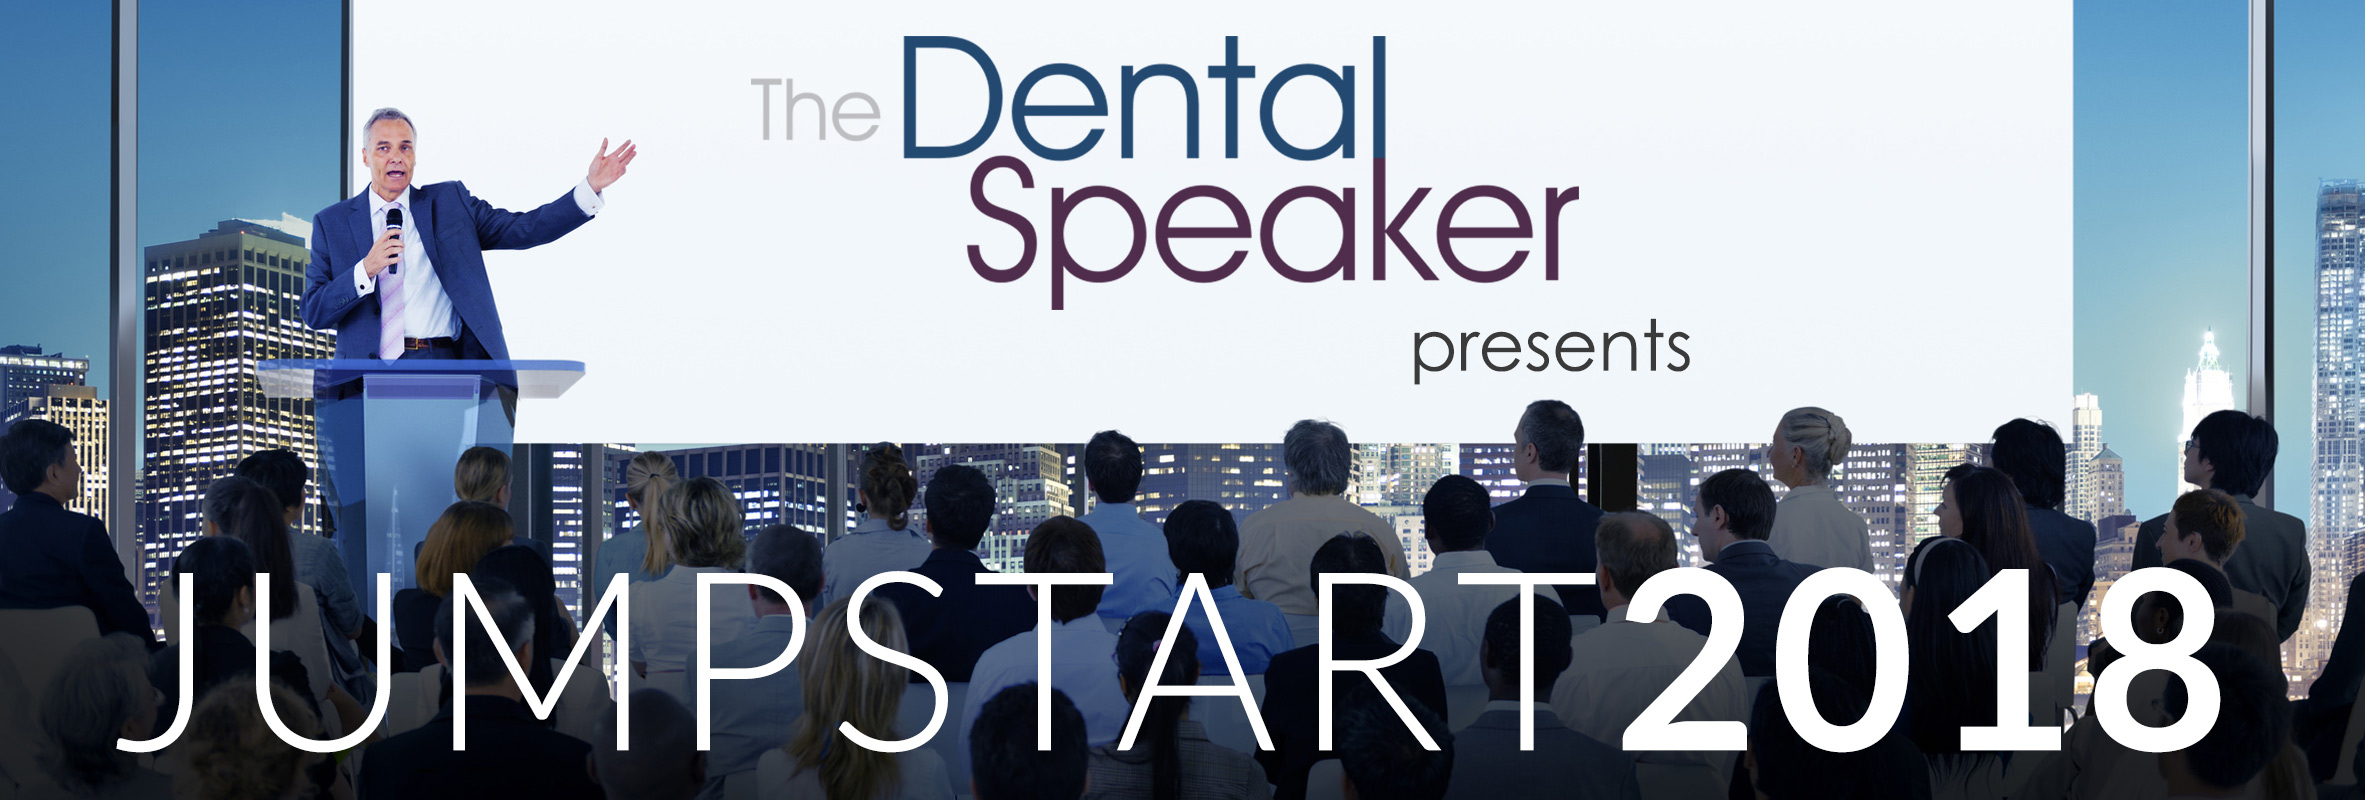 jumpstart 2018 dental speaking meeting